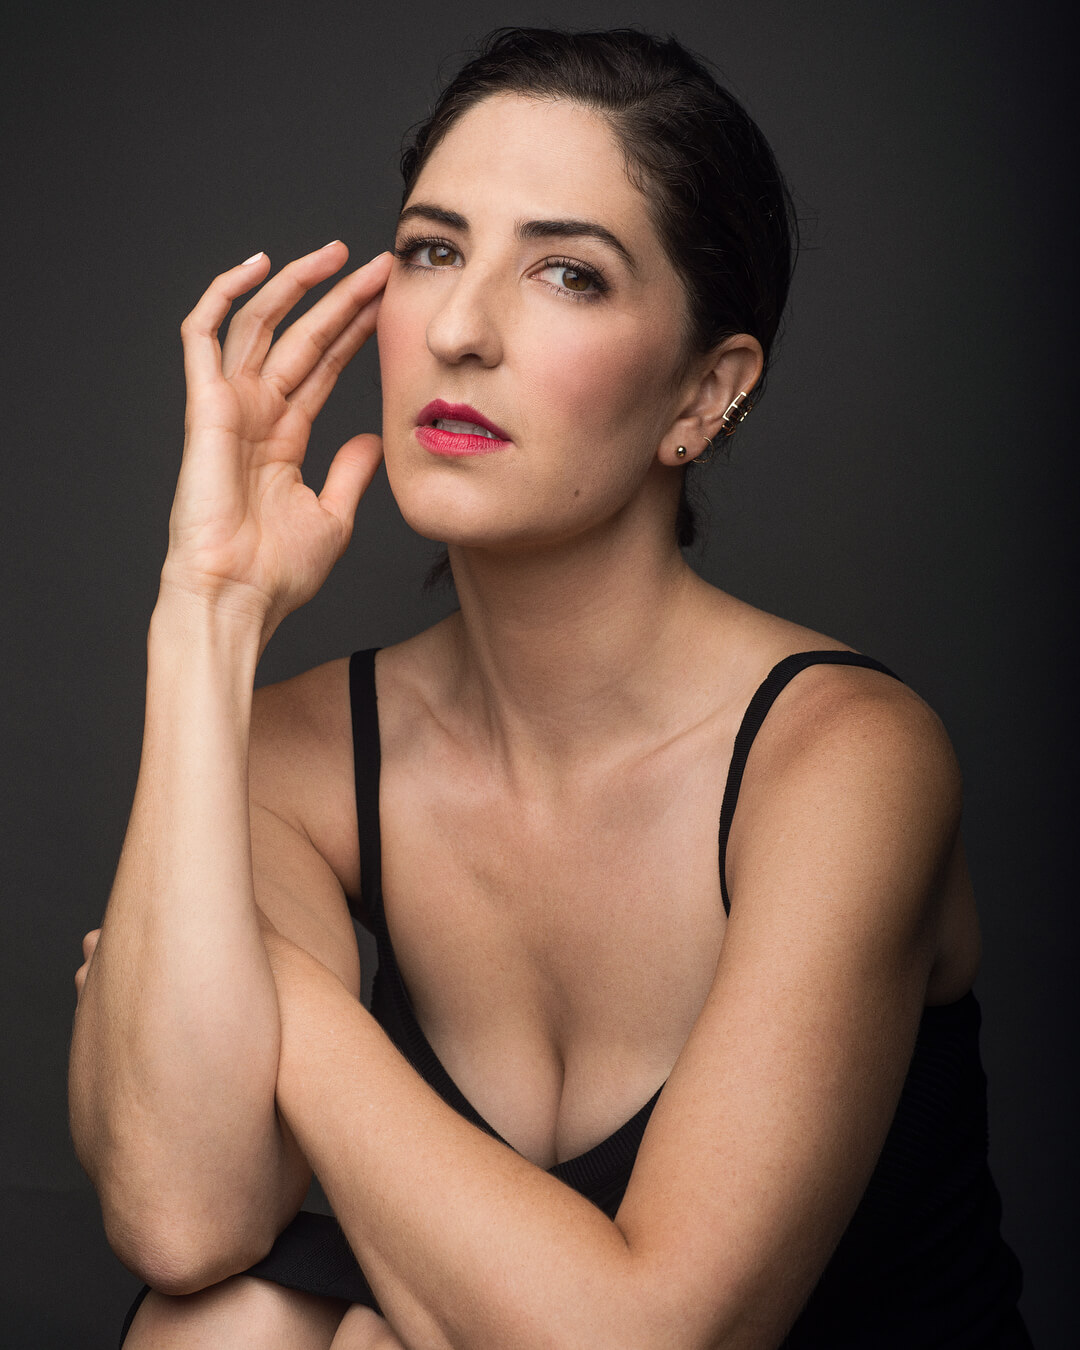 D'Arcy Carden sexy cleavage pictures (2)